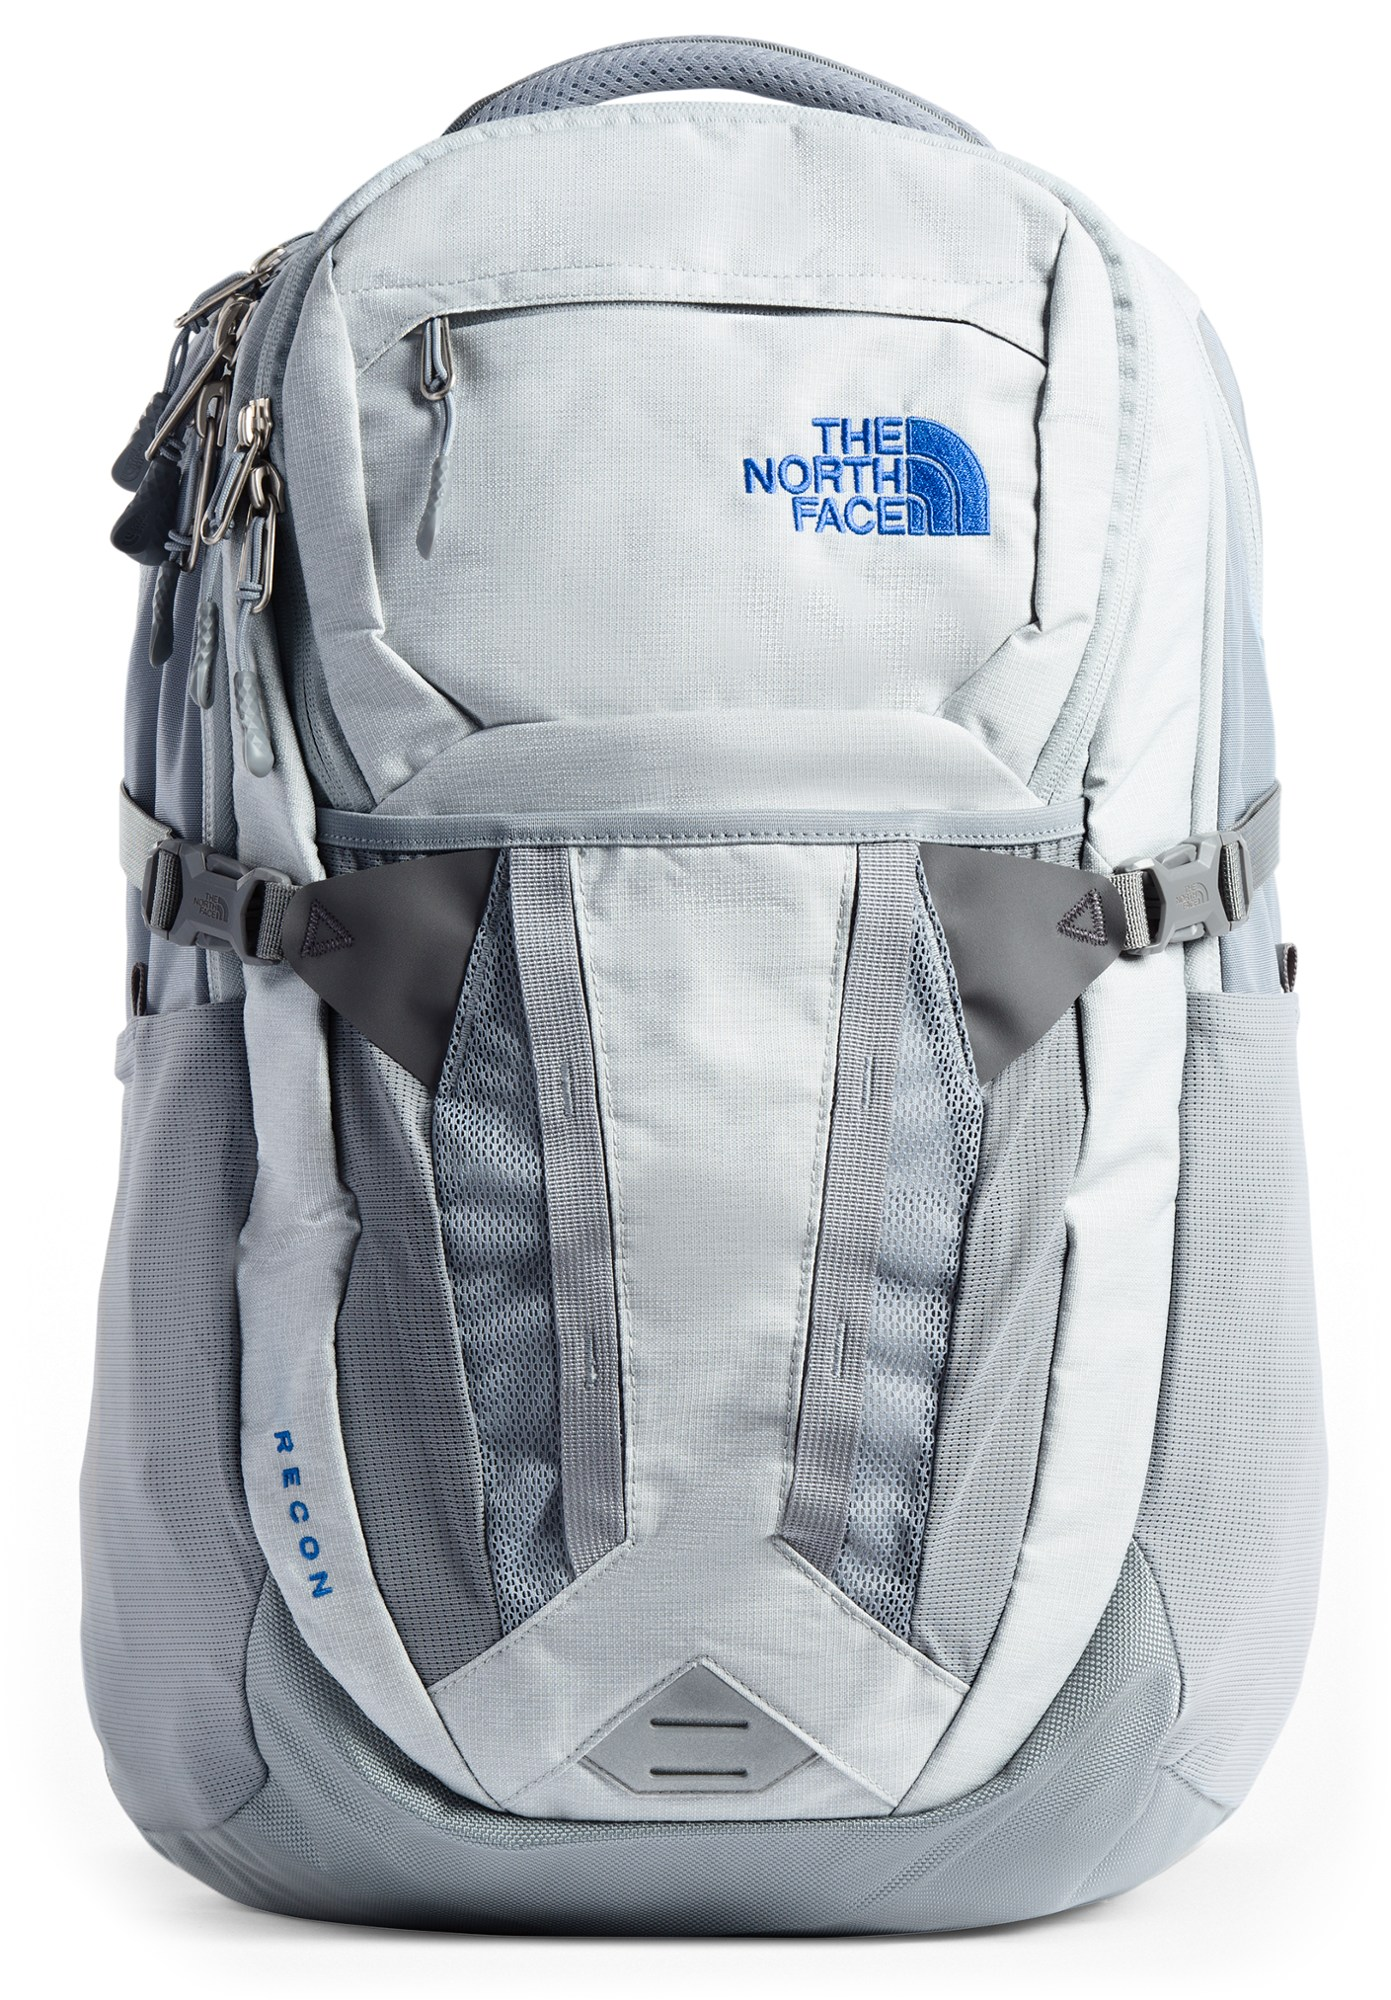 The North Face Recon Pack - Men's